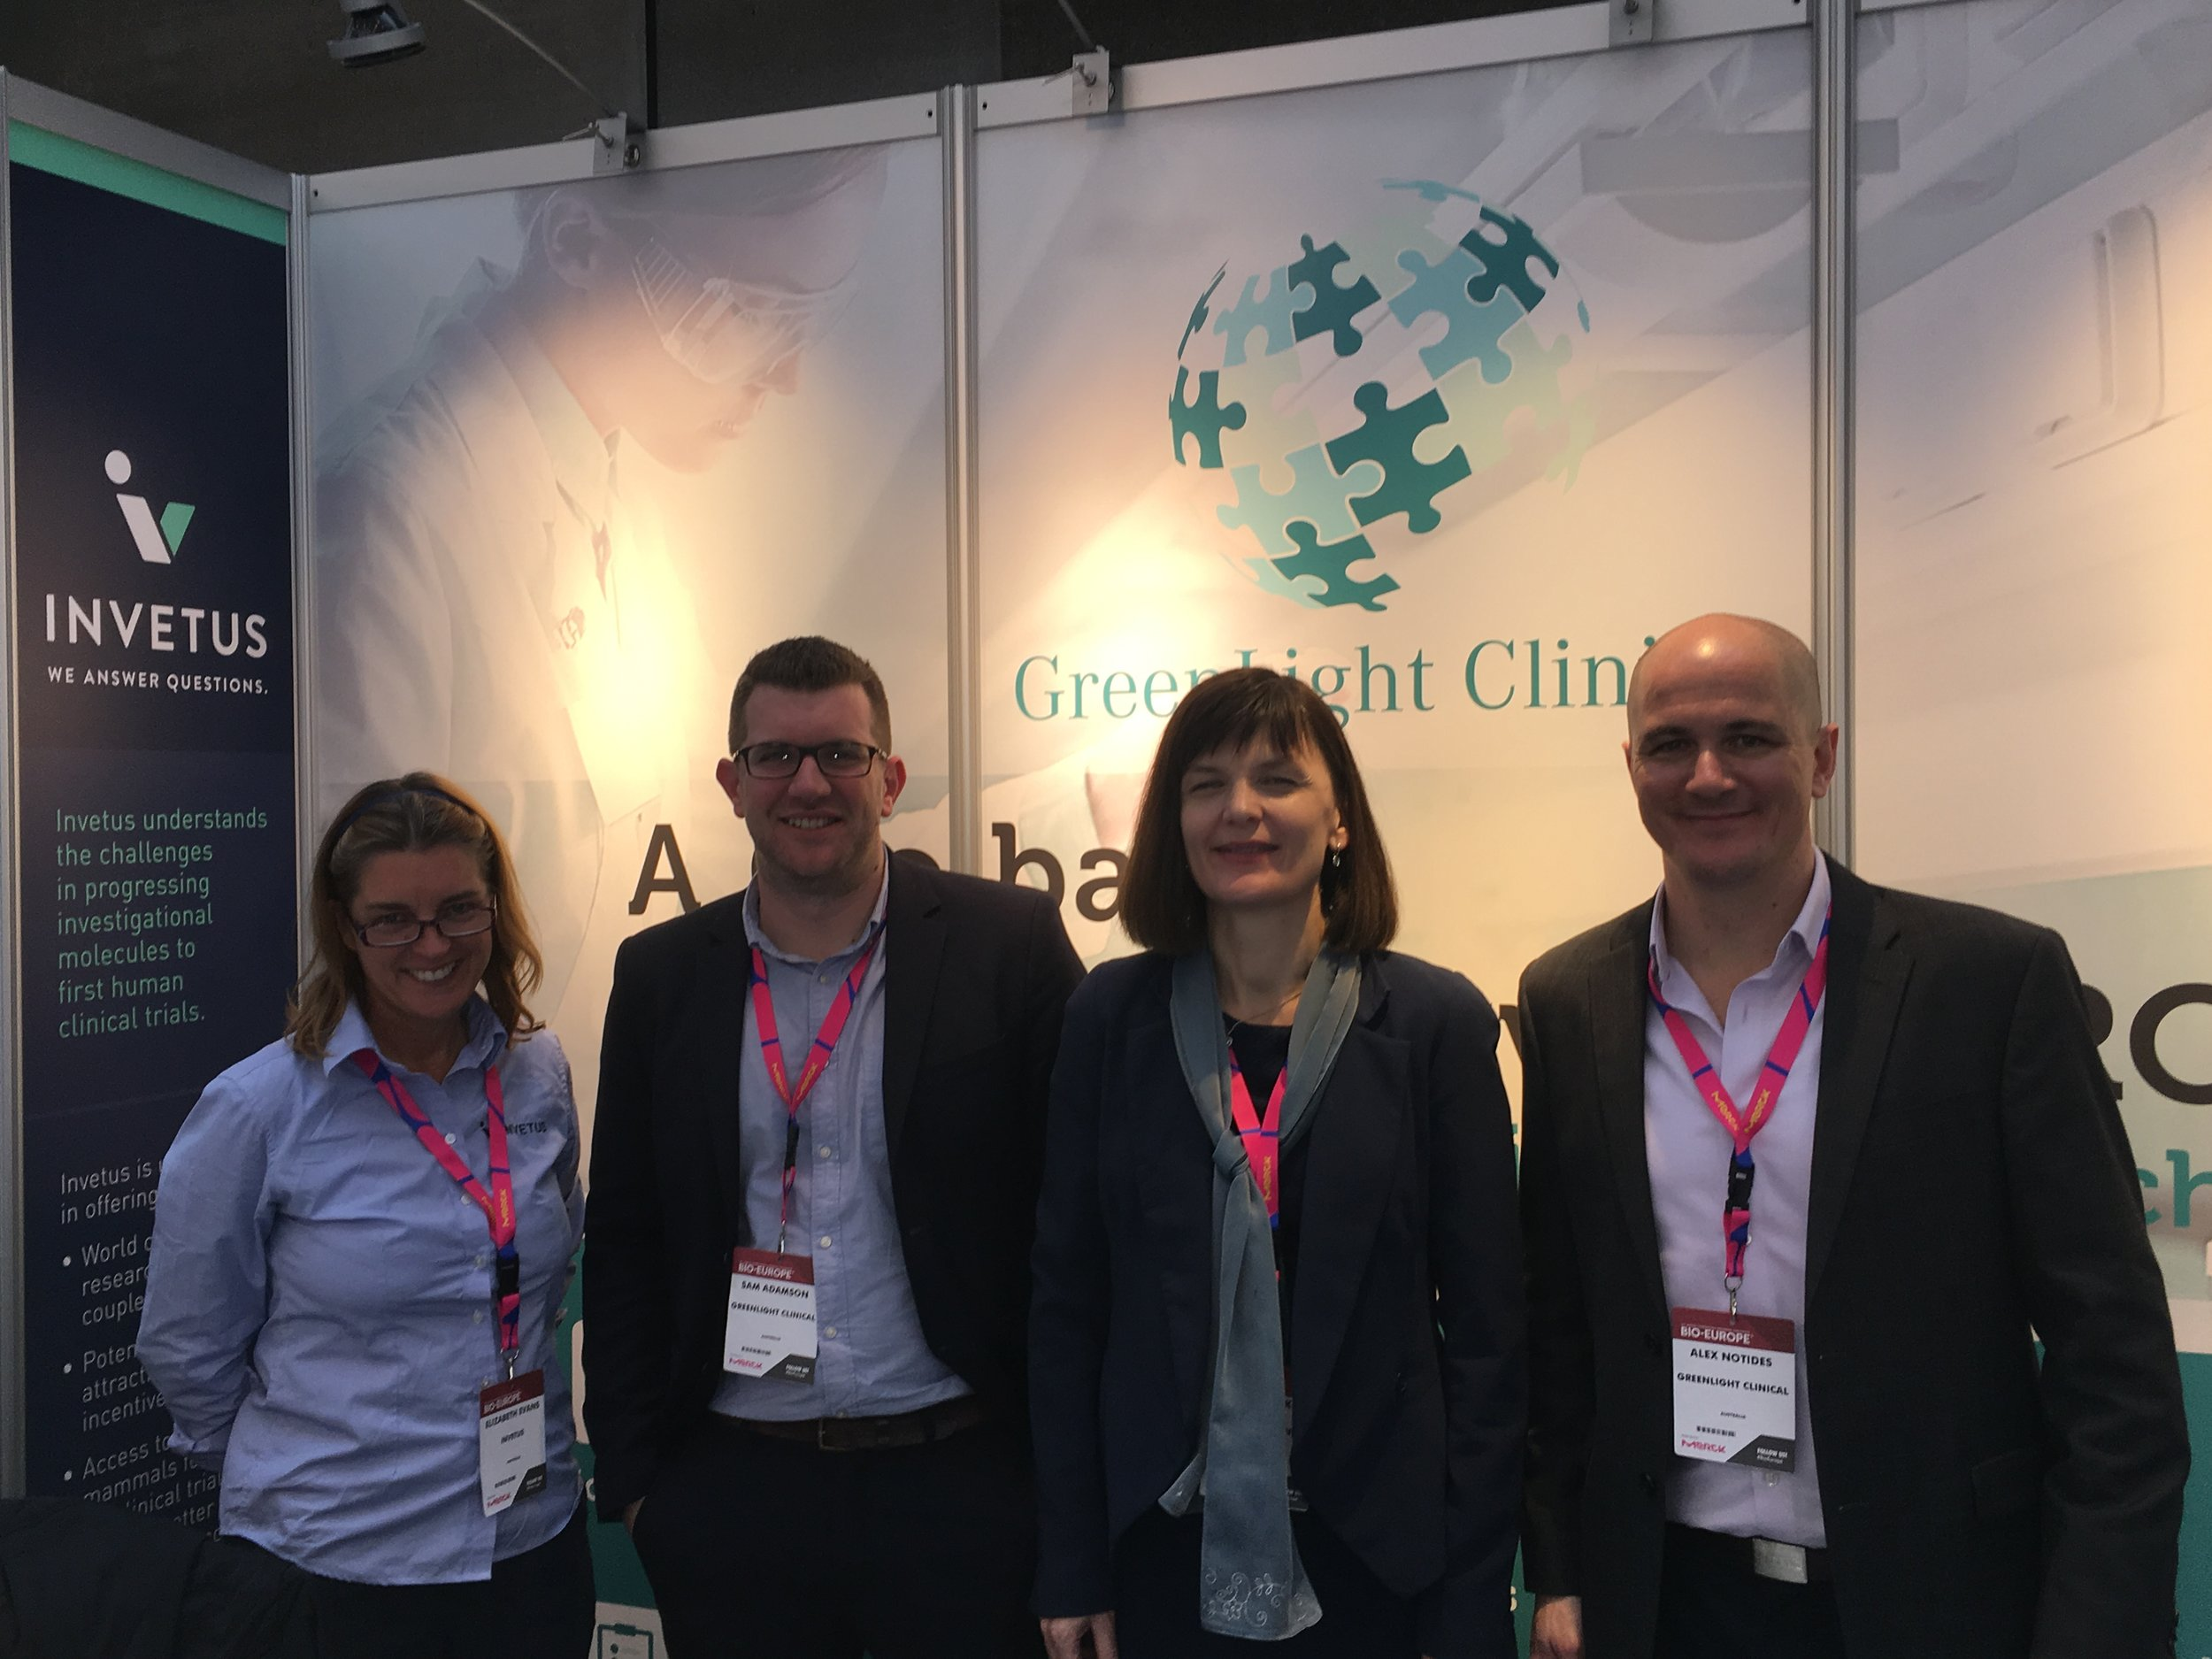 (L-R)  Dr Elizabeth Evans  (Invetus Director Business Development) with GreenLight Clinical colleagues  Sam Adamson  (Medical Science Liaison),  Linda Slipko  (Director, EU Business Development Manager),  Alex Notides  (Director, Asia Pacific Business Development)